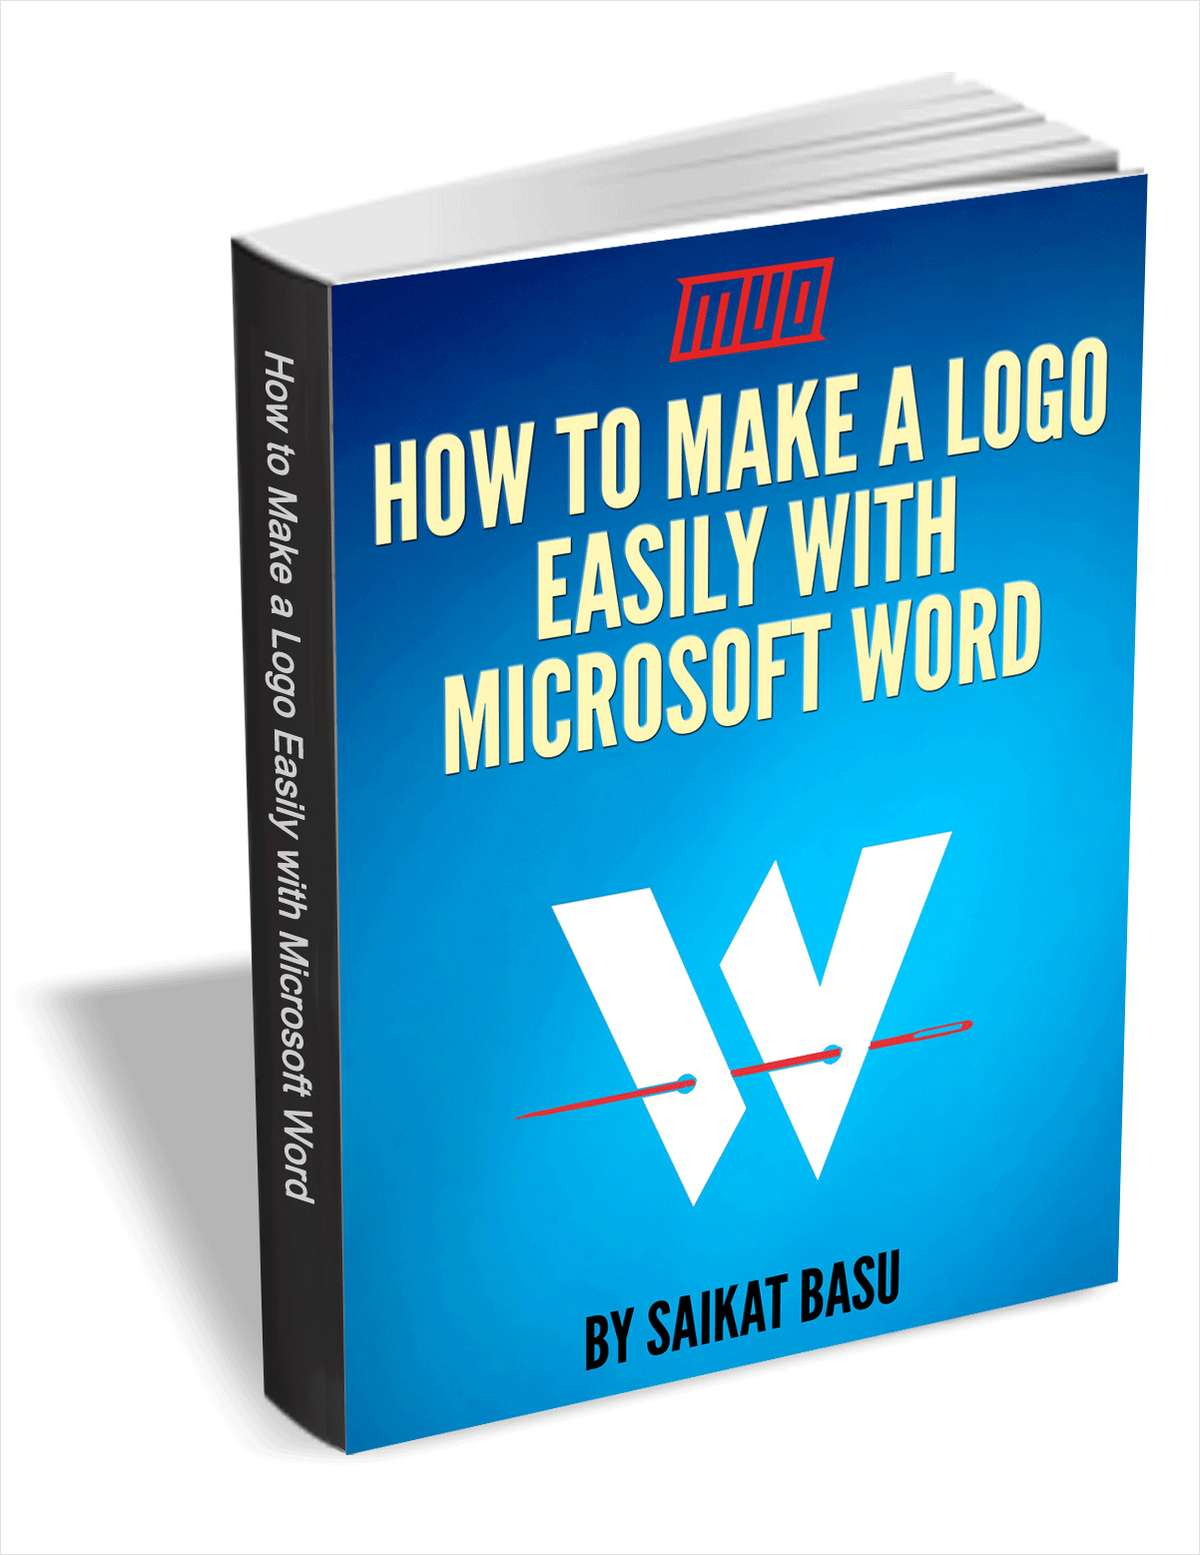 How to Make a Logo Easily with Microsoft Word